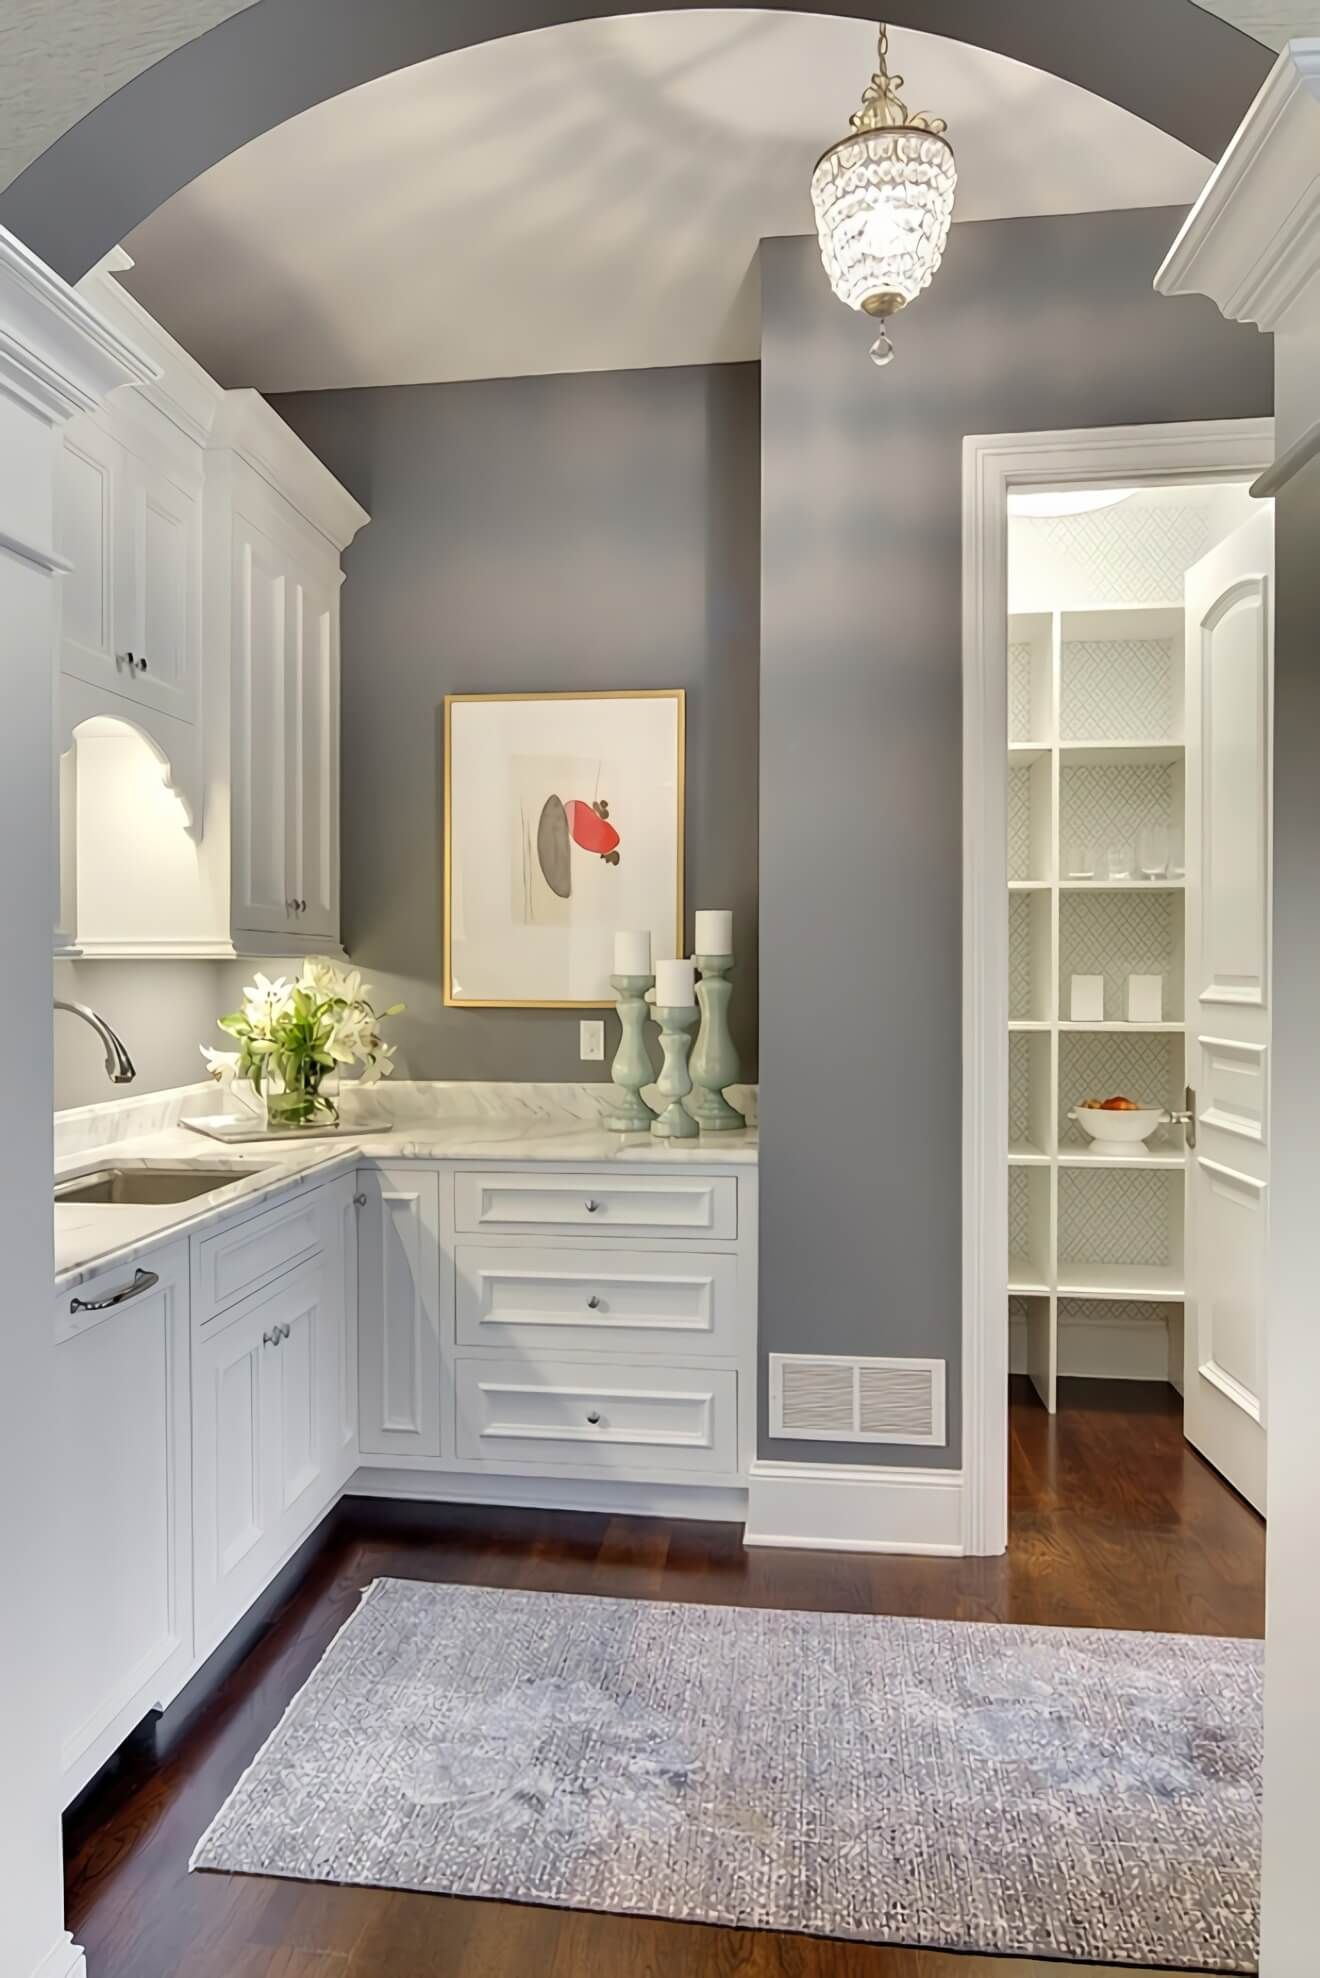 kitchen wall color ideas that make your kitchen more fancy on wall colors for 2021 id=33385